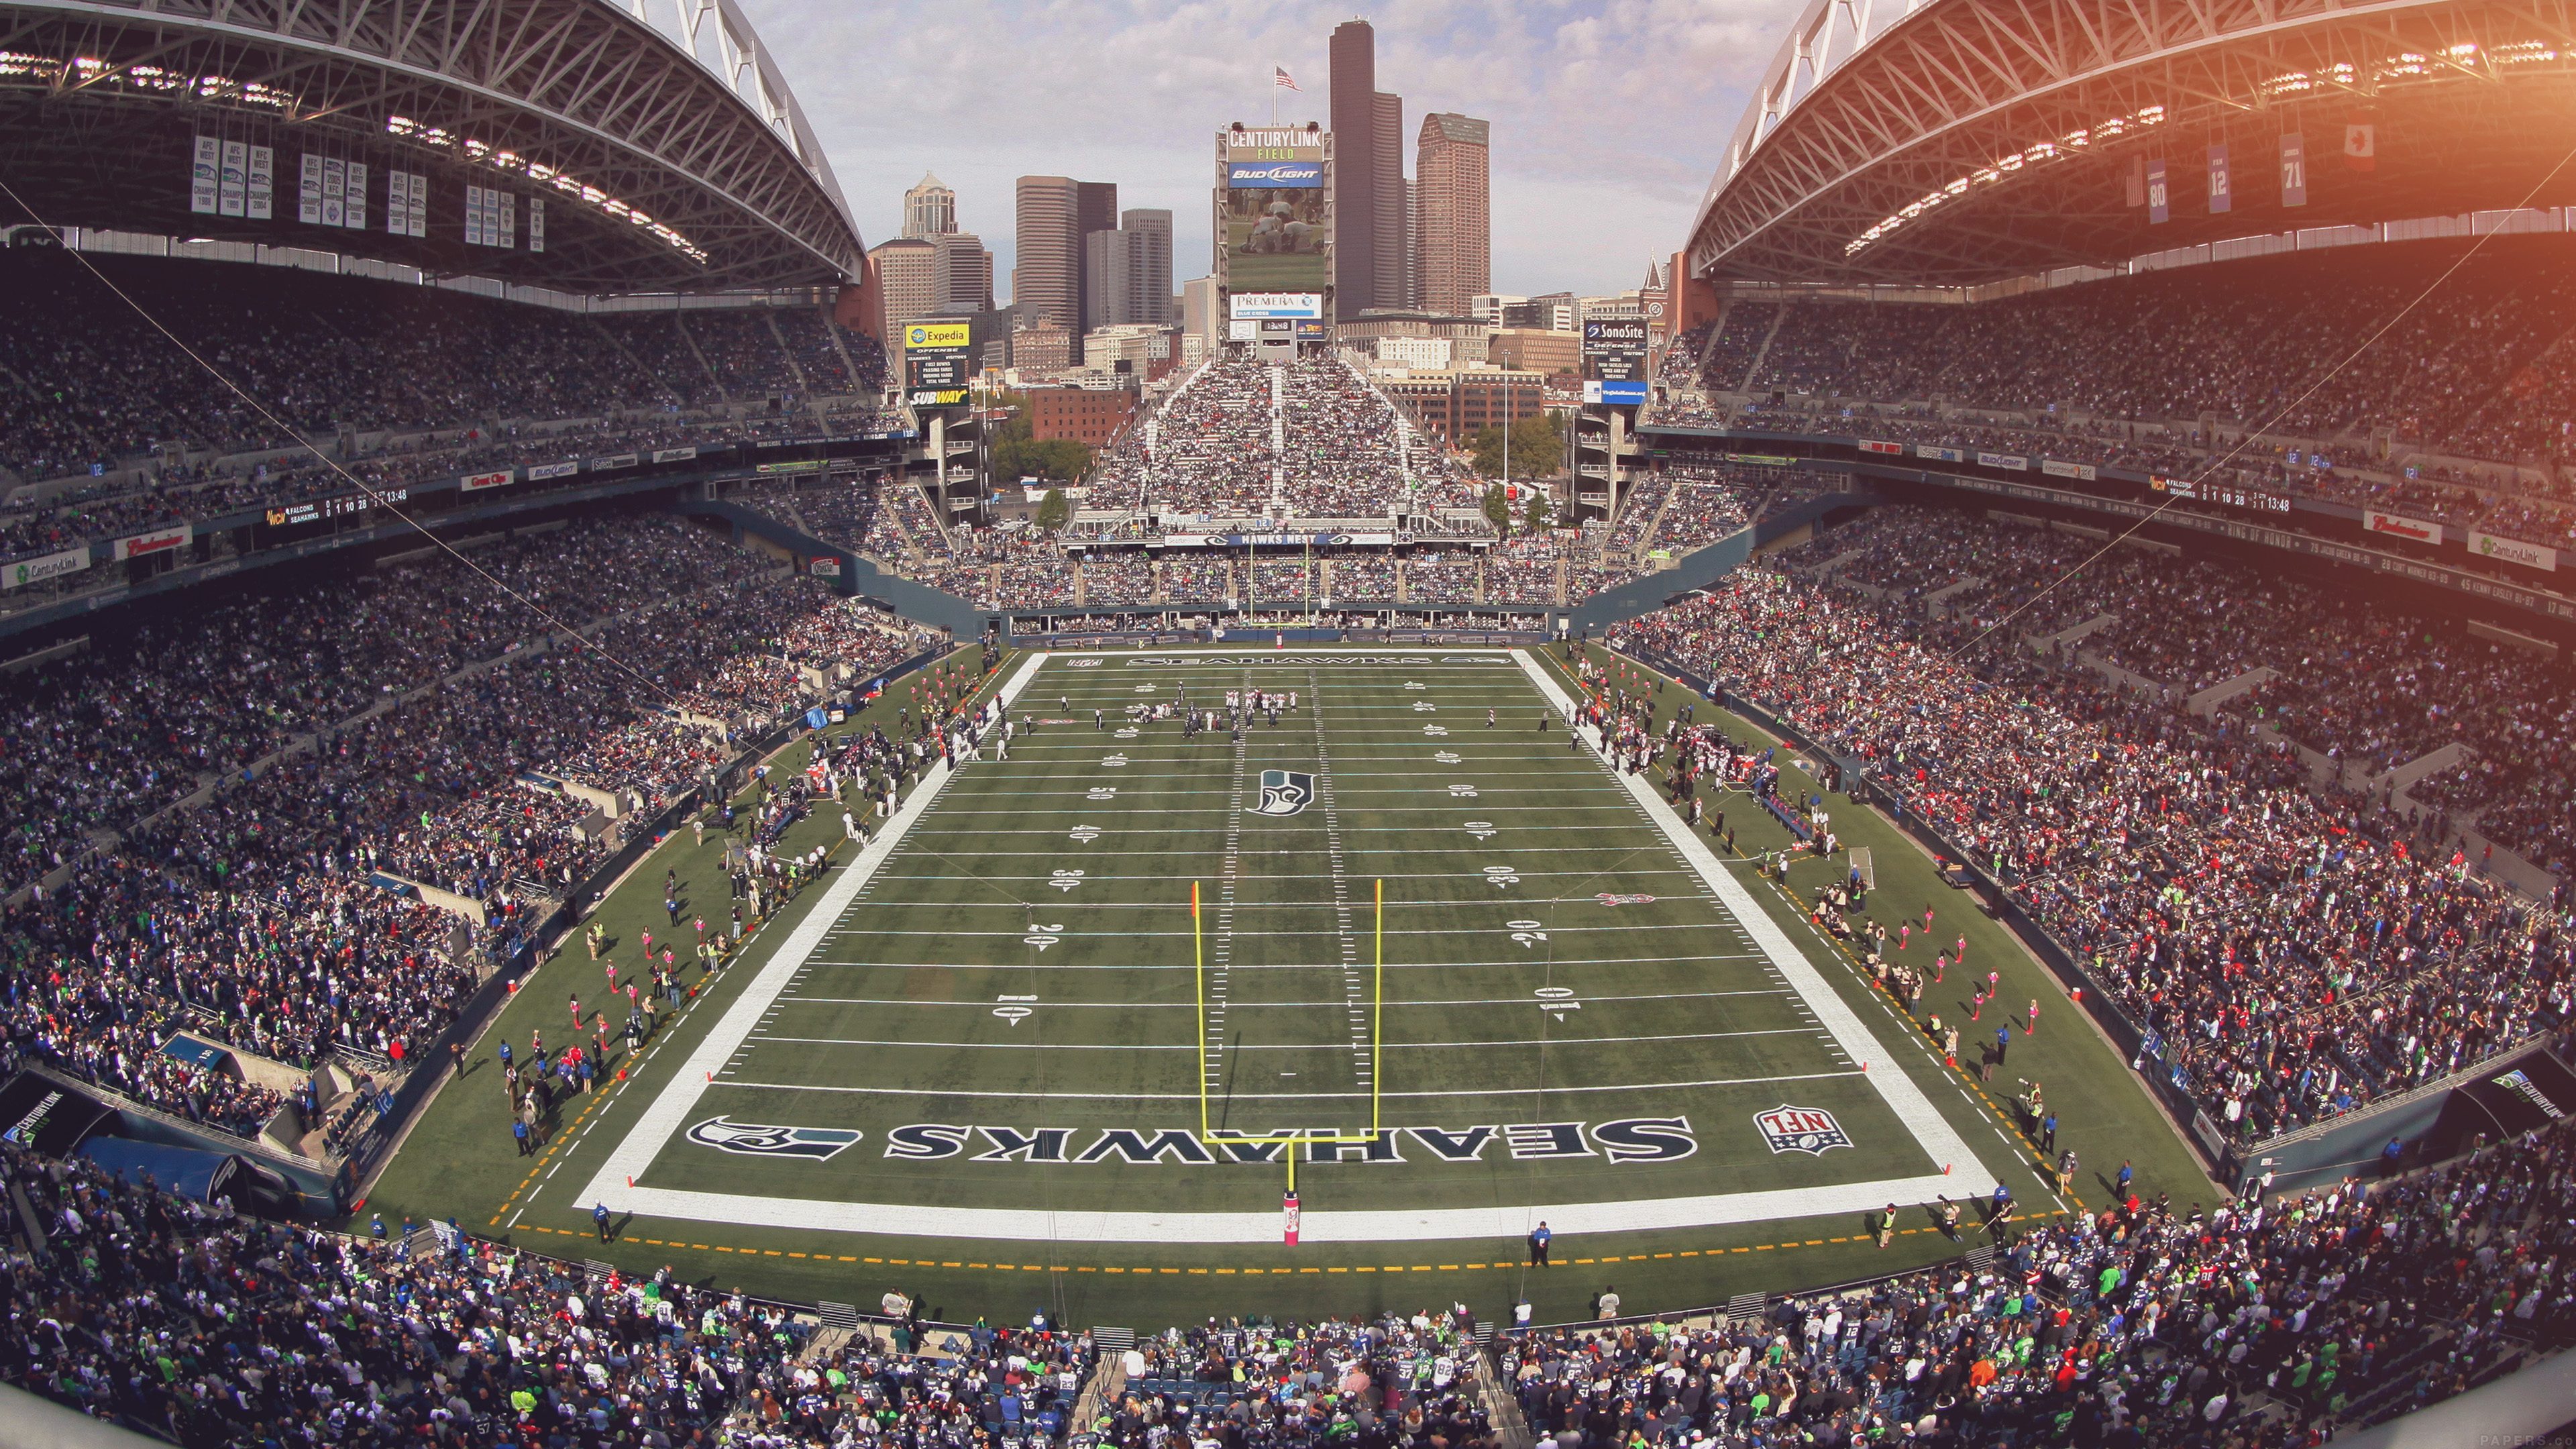 mp98-seahawks-seattle-sports-stadium-football-nfl - Papers.co